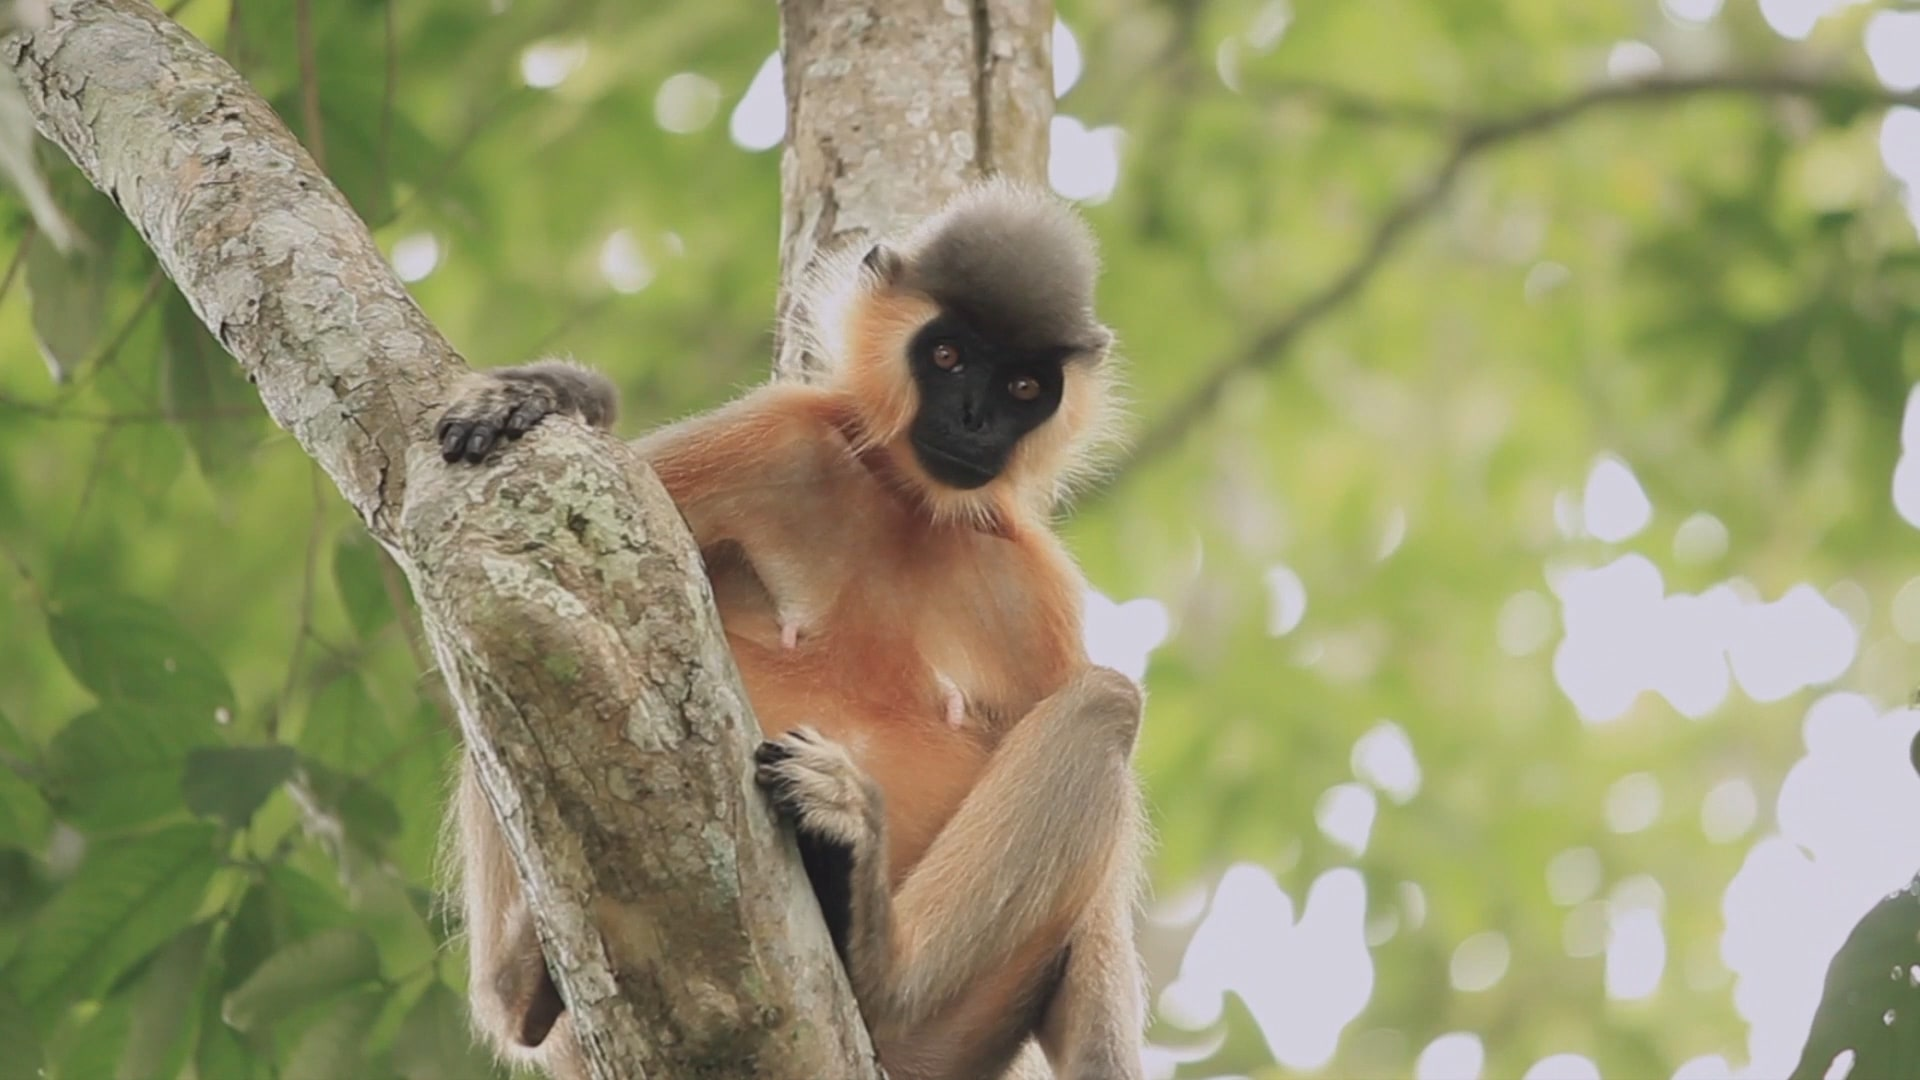 Capped Langurs and their Risky Quest for a Special Treat